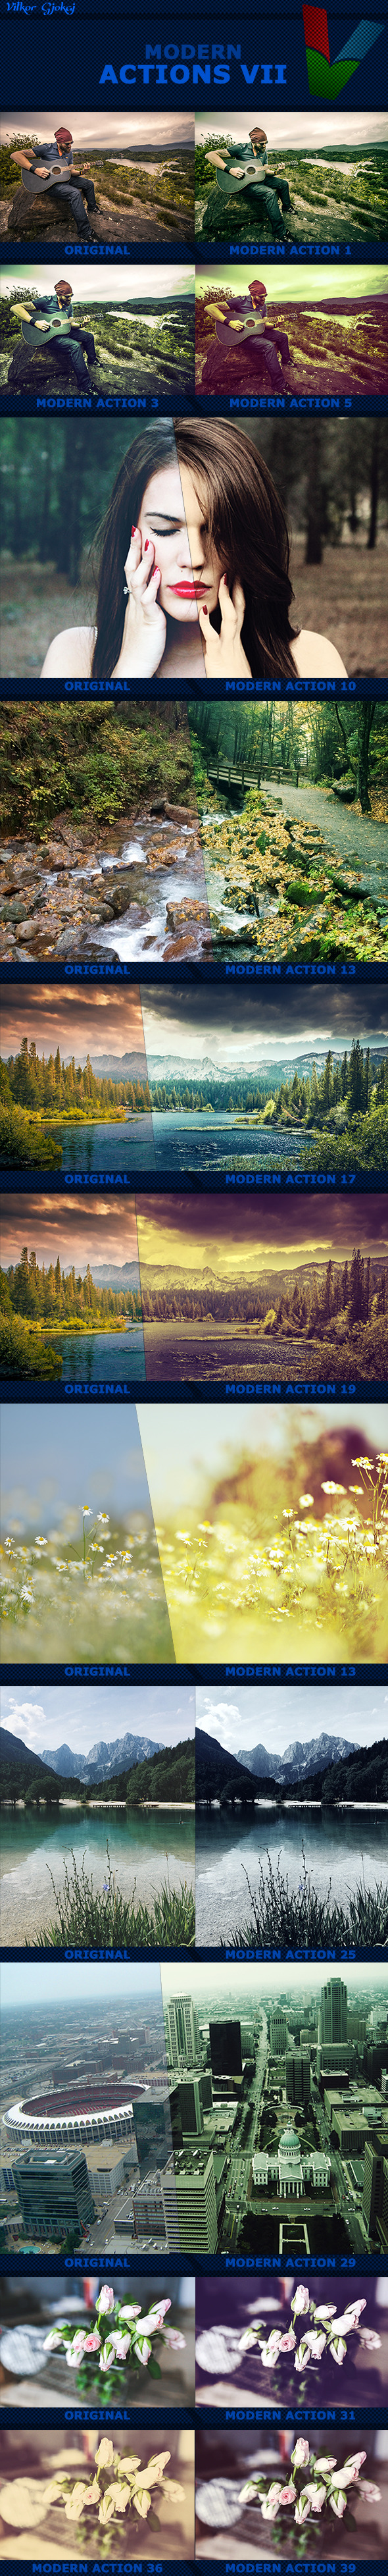 40 Modern Actions VII - Photo Effects Actions